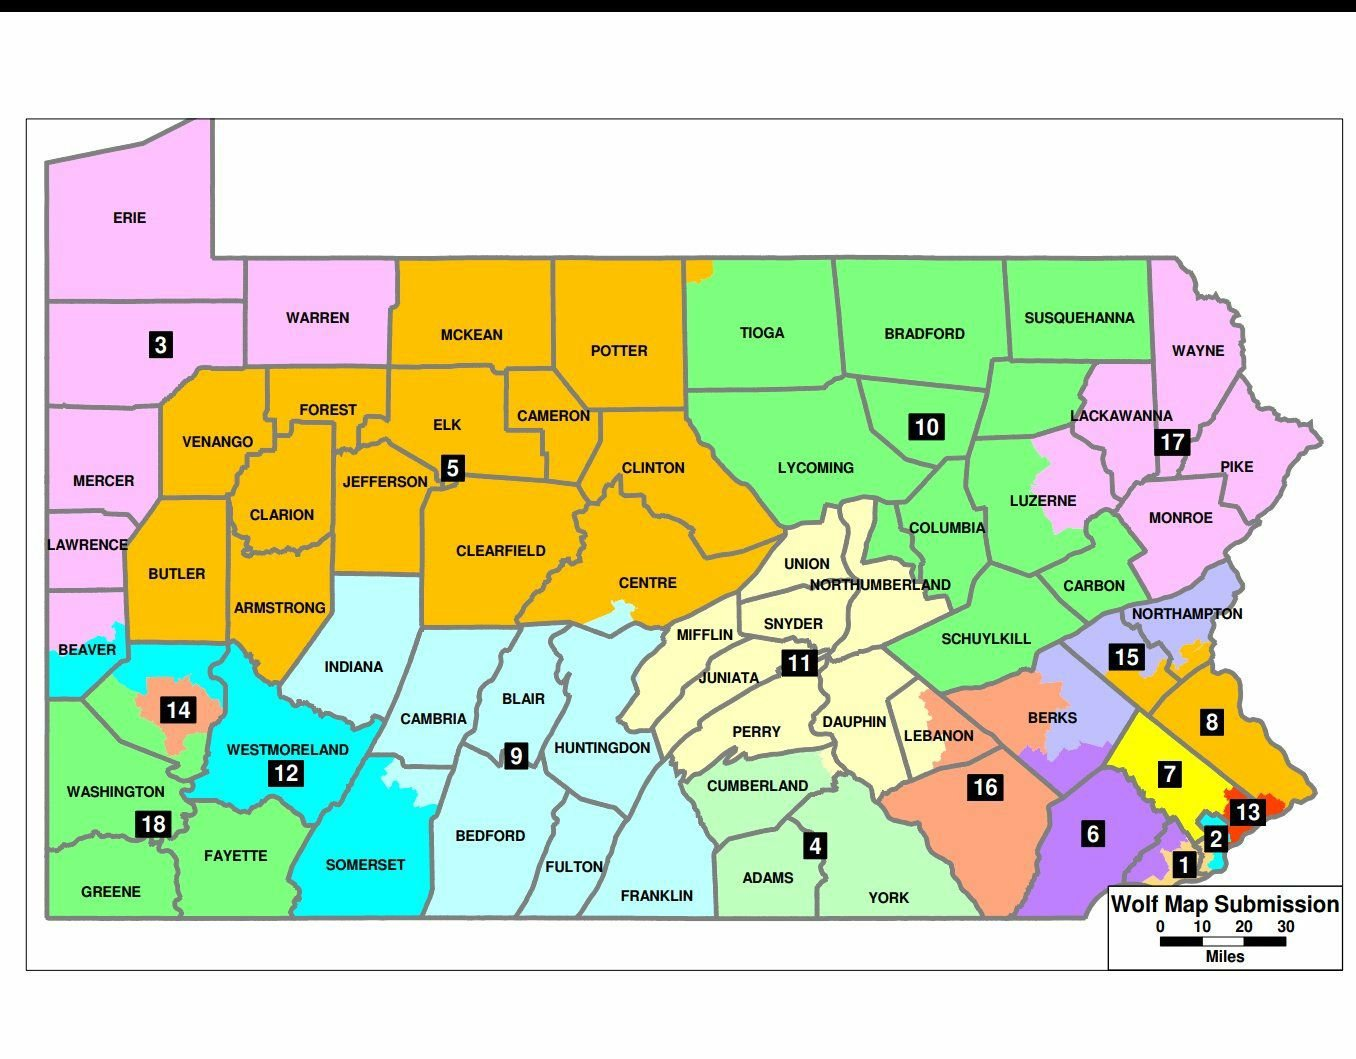 Pennsylvania Redistricting Reform Commission Holds Public Meeting in Erie